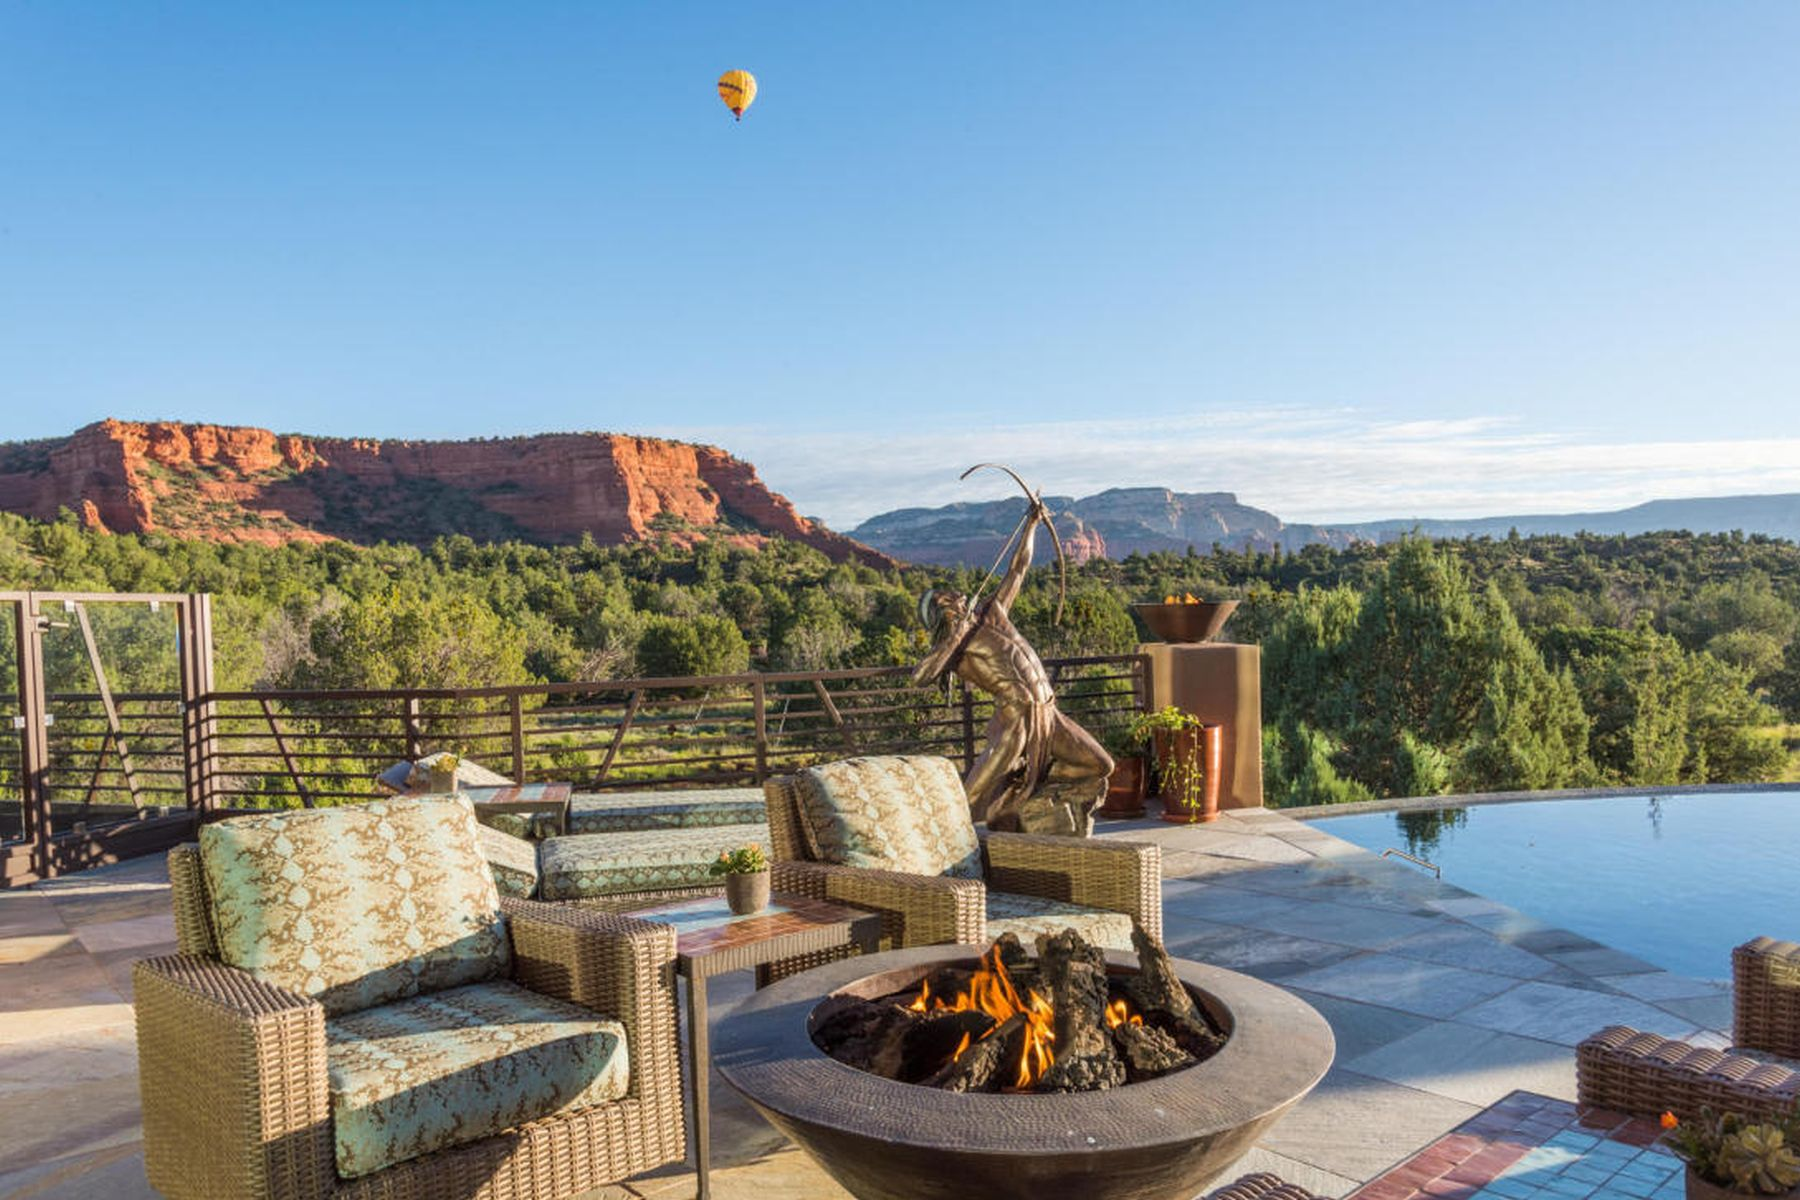 Single Family Home for Sale at organically sophisticated sanctuary 125 ALTAIR AVE Sedona, Arizona 86336 United States